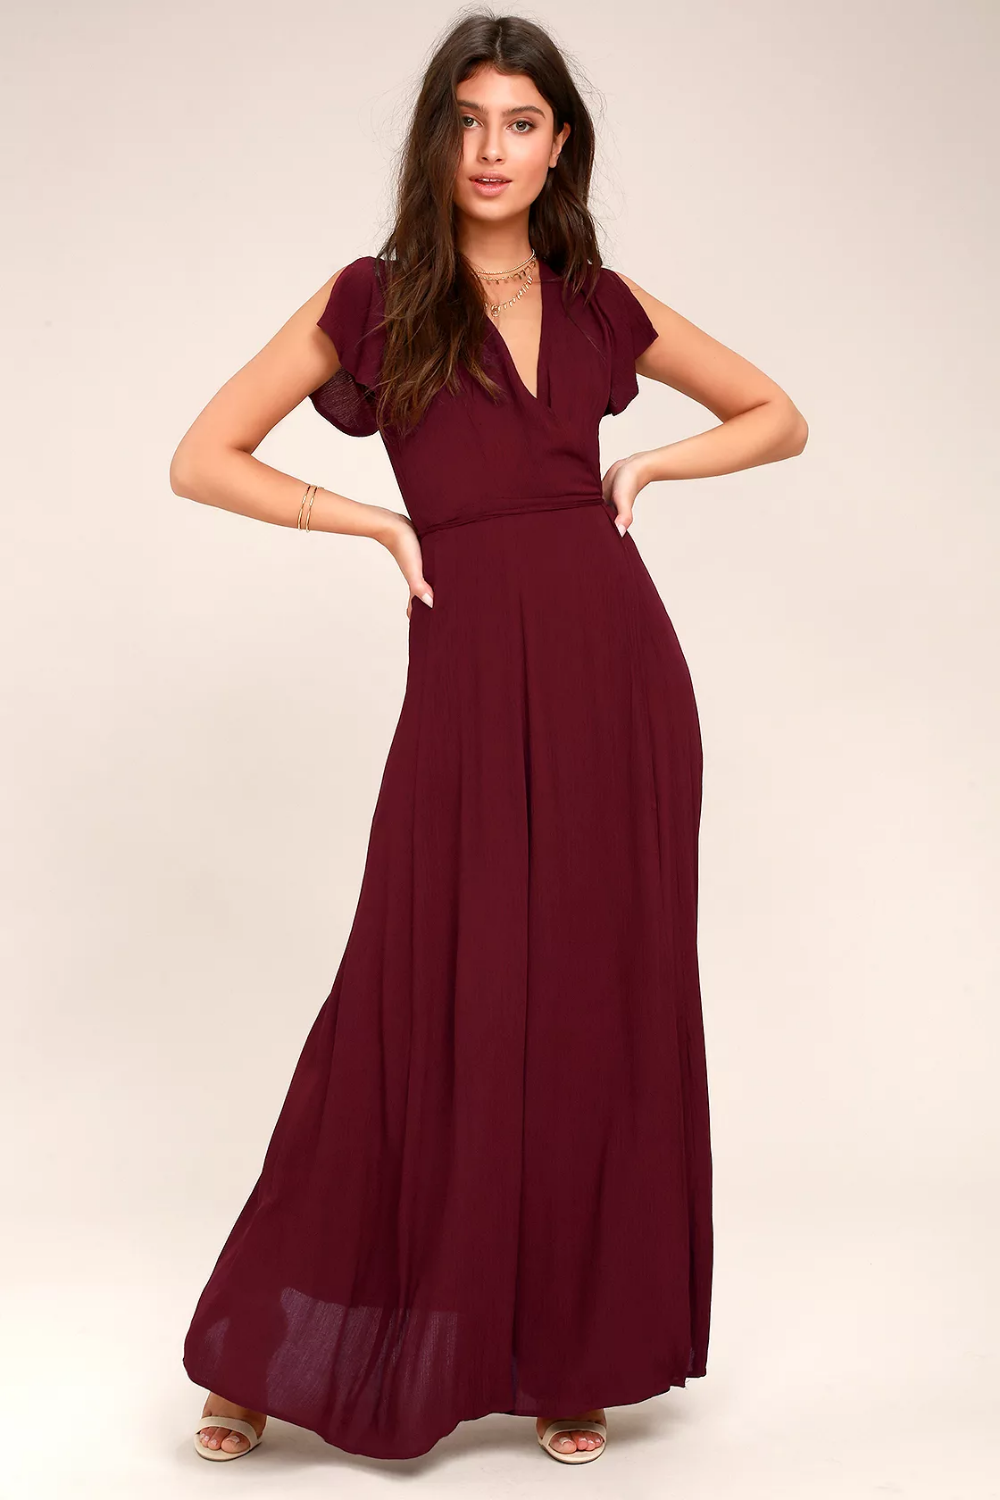 Heart of Marigold Burgundy Wrap Maxi Dress (With images ...